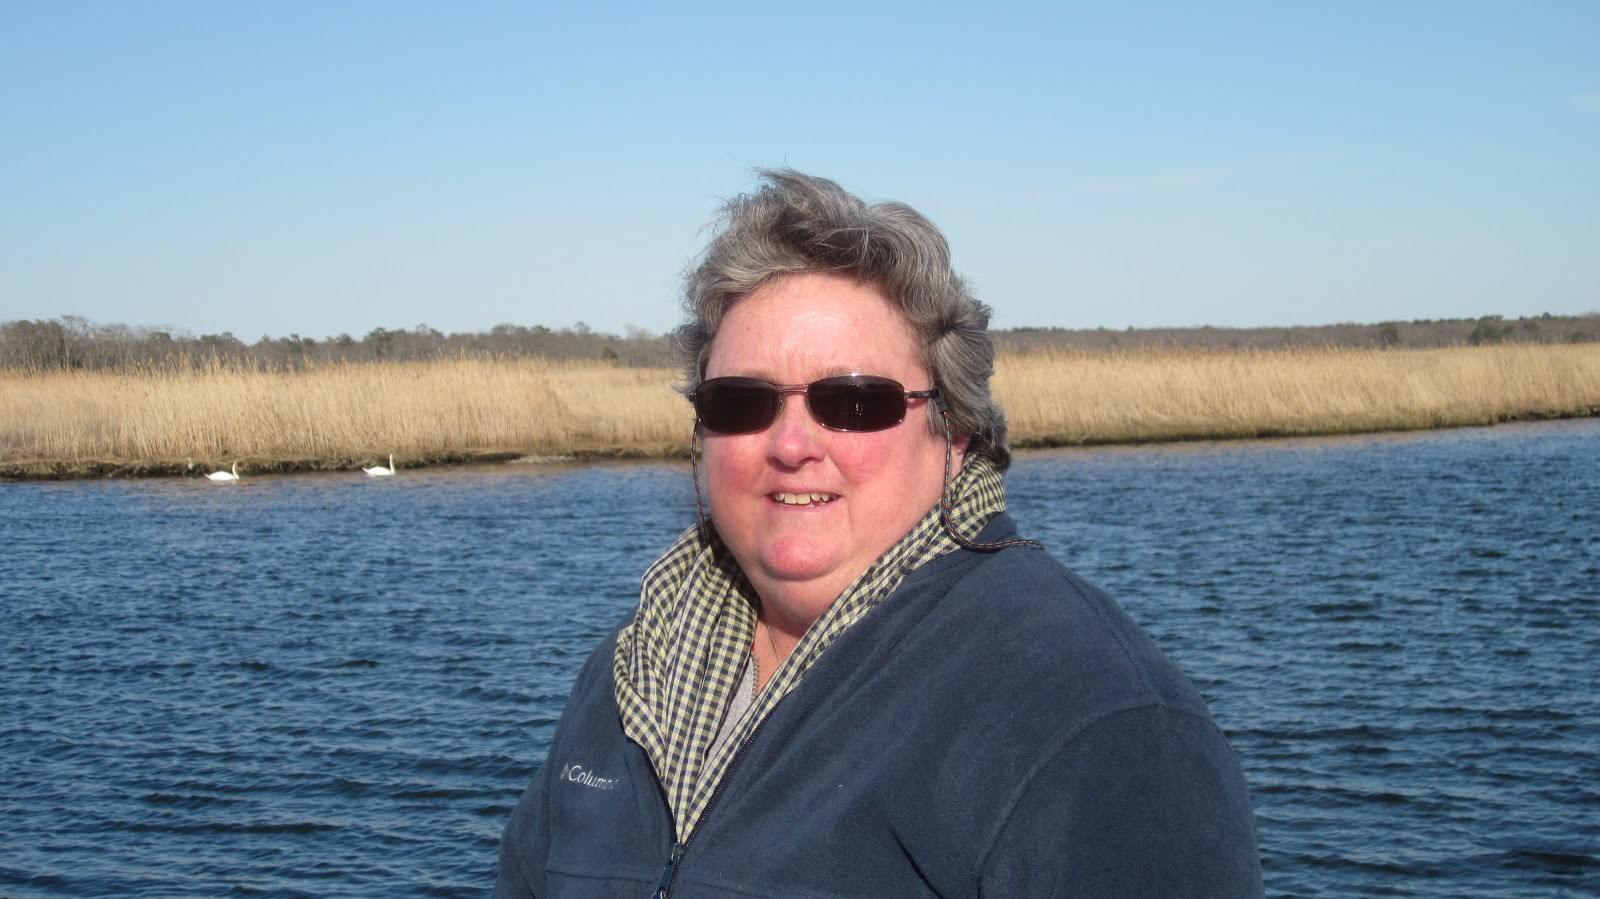 peconic girls A day in the life of the peconic estuary will be held on october 20th, 2017 at various sites around the estuary a day in the life of the carmans river, peconic.